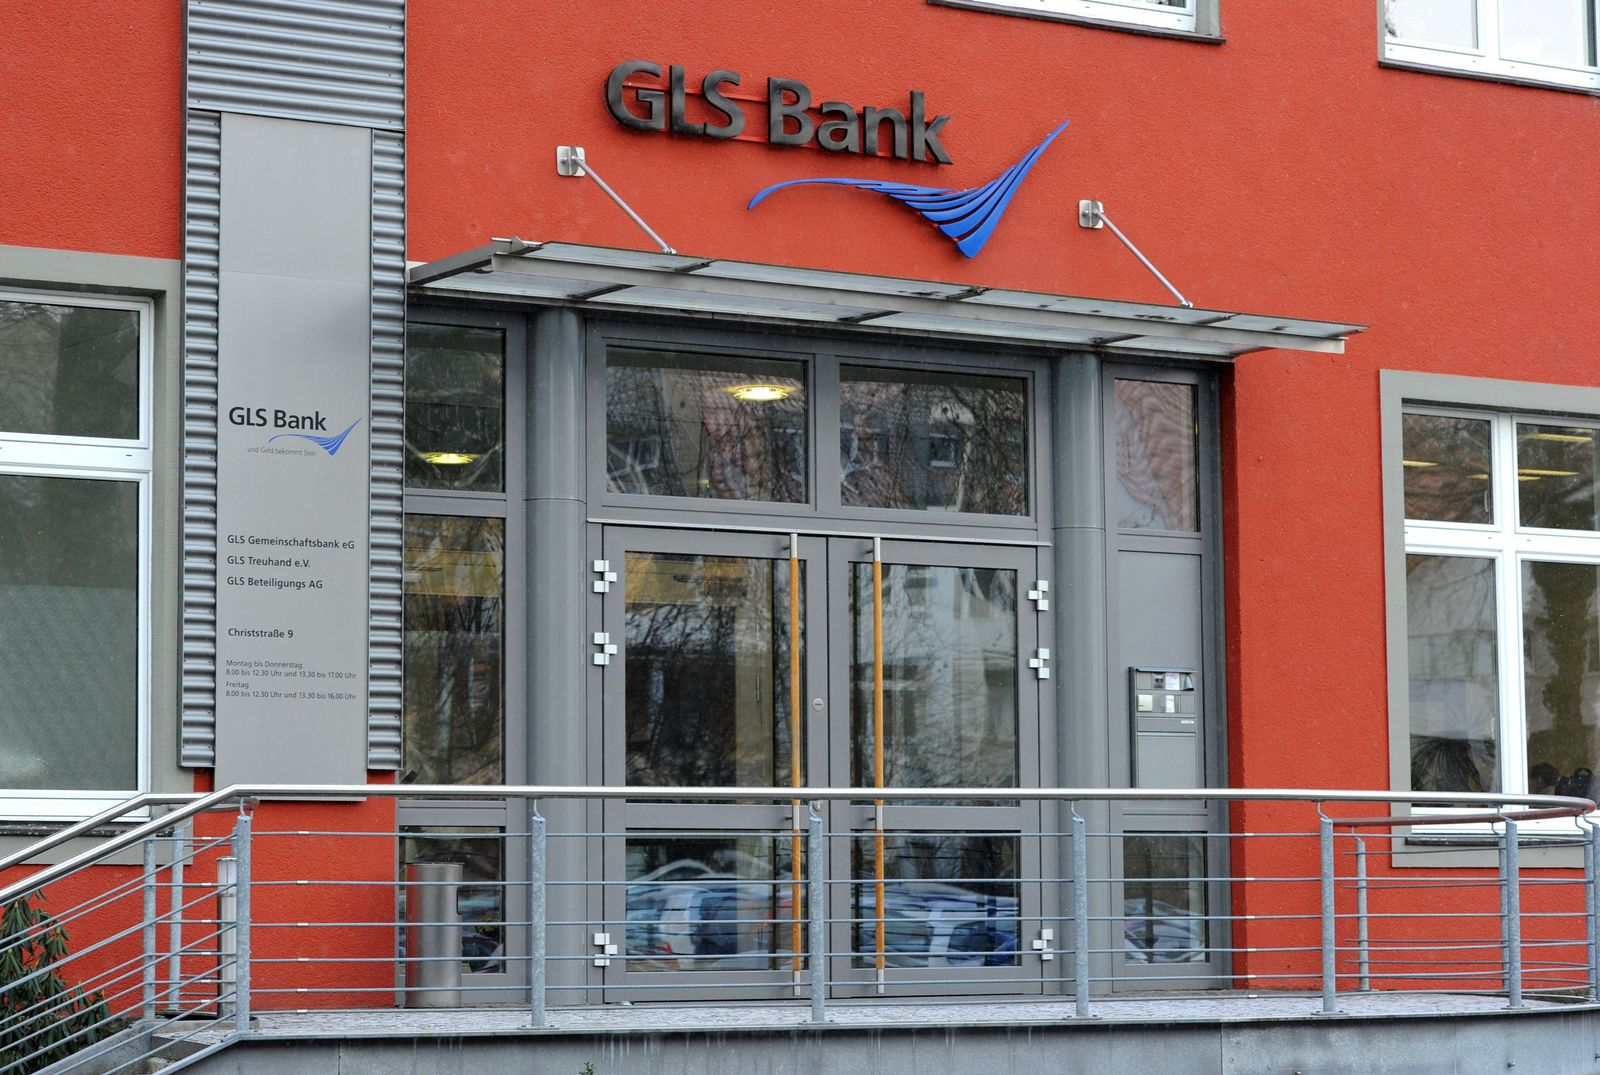 GLS Bank in Bochum